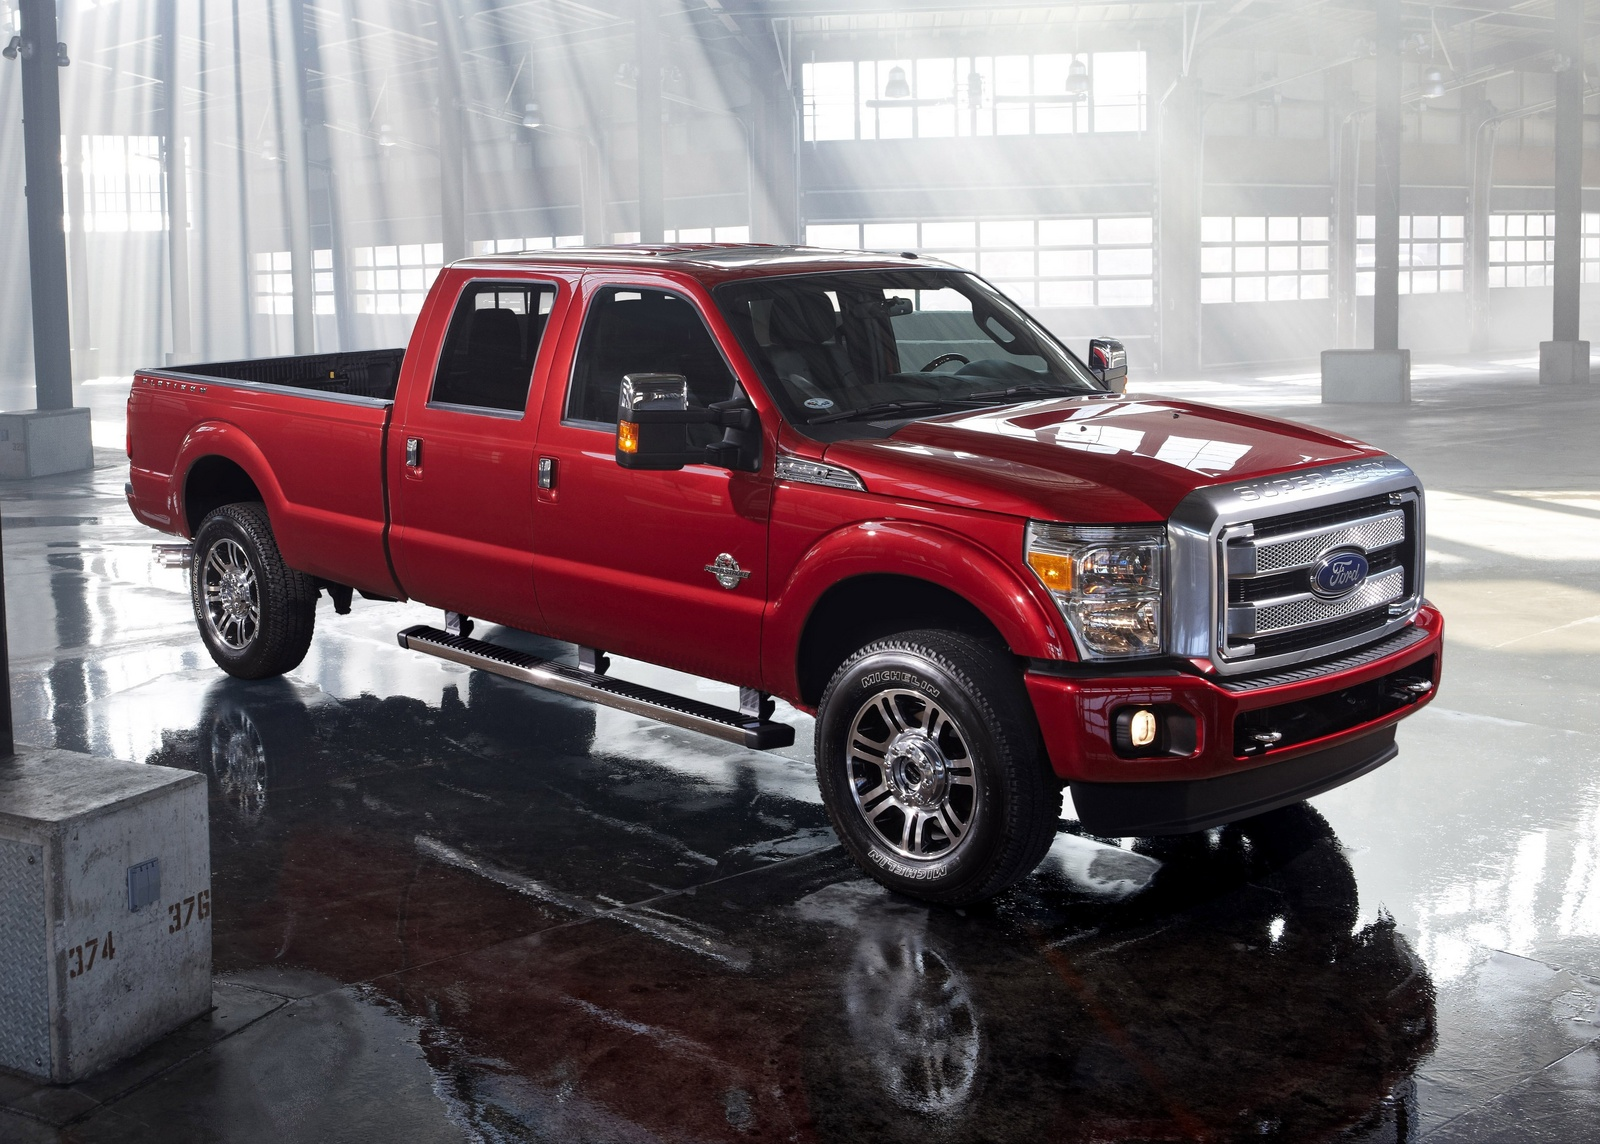 2014 ford f 350 super duty pictures cargurus. Black Bedroom Furniture Sets. Home Design Ideas